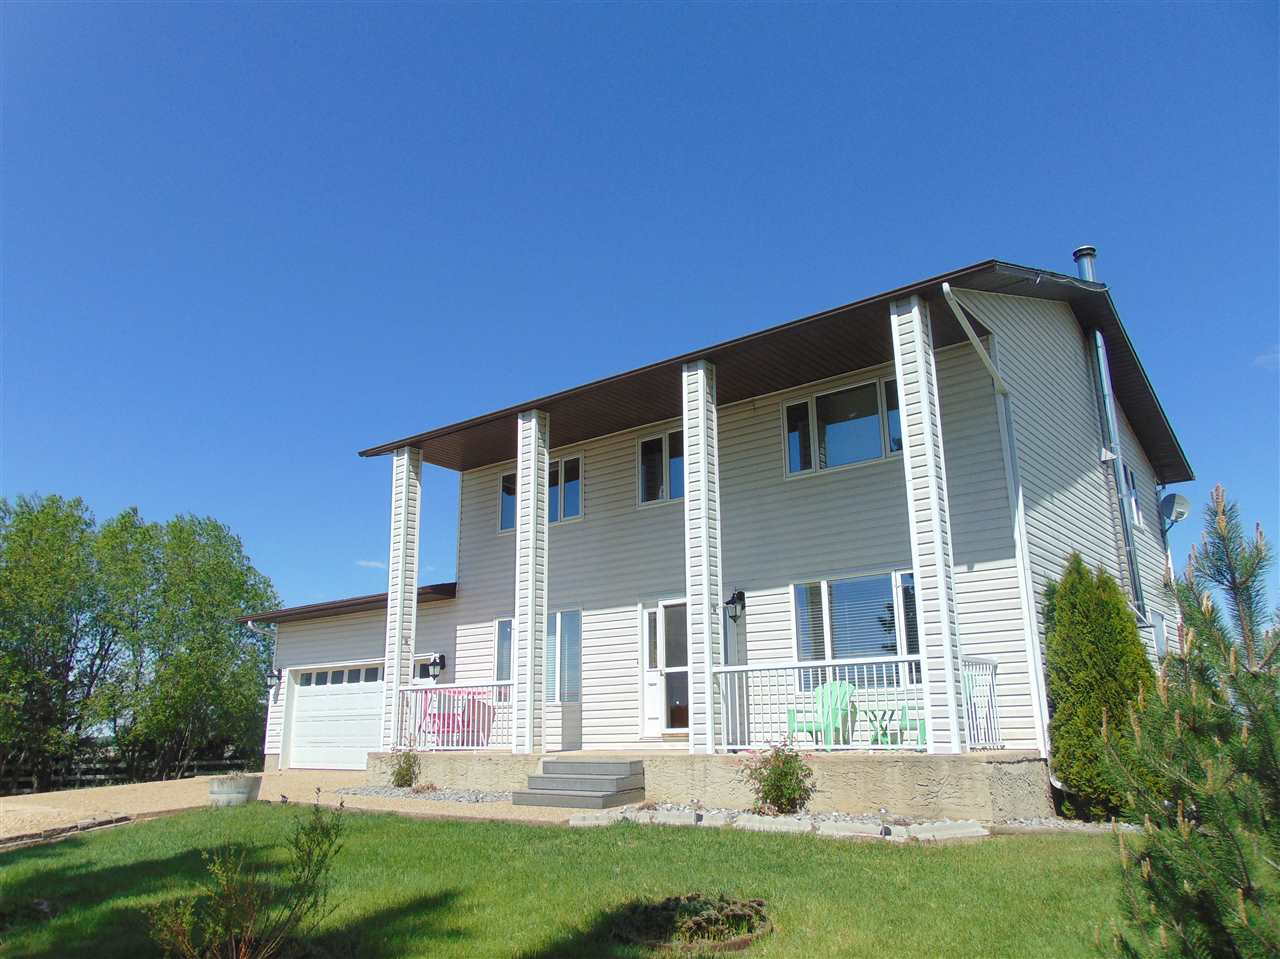 Photo 27: 61124 Rg Rd 253: Rural Westlock County House for sale : MLS(r) # E4065150